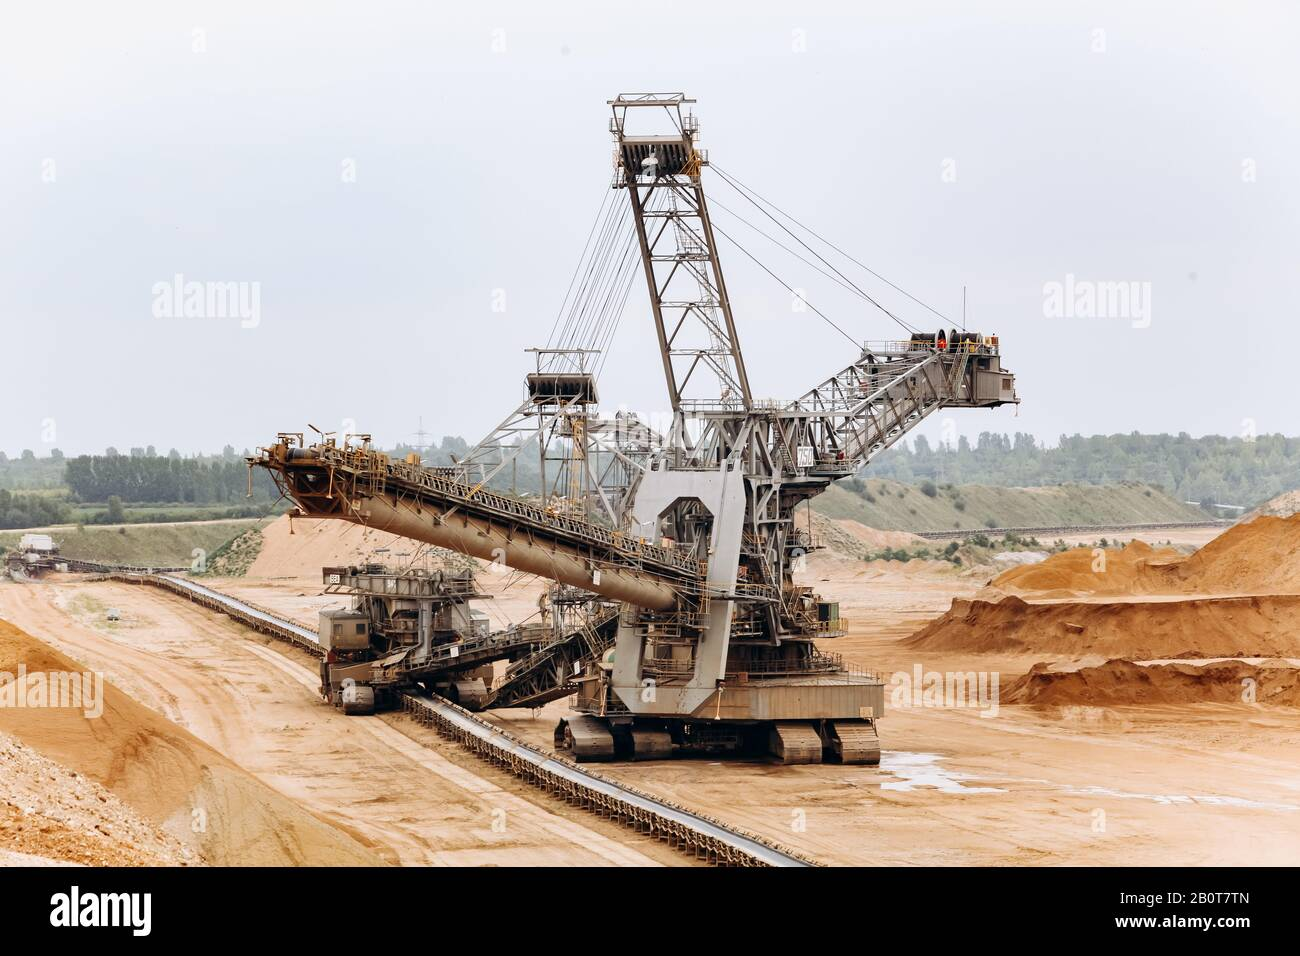 Giant Bucket Wheel Excavator The Biggest Excavator In The World The Largest Land Vehicle Excavator In The Mines Stock Photo Alamy